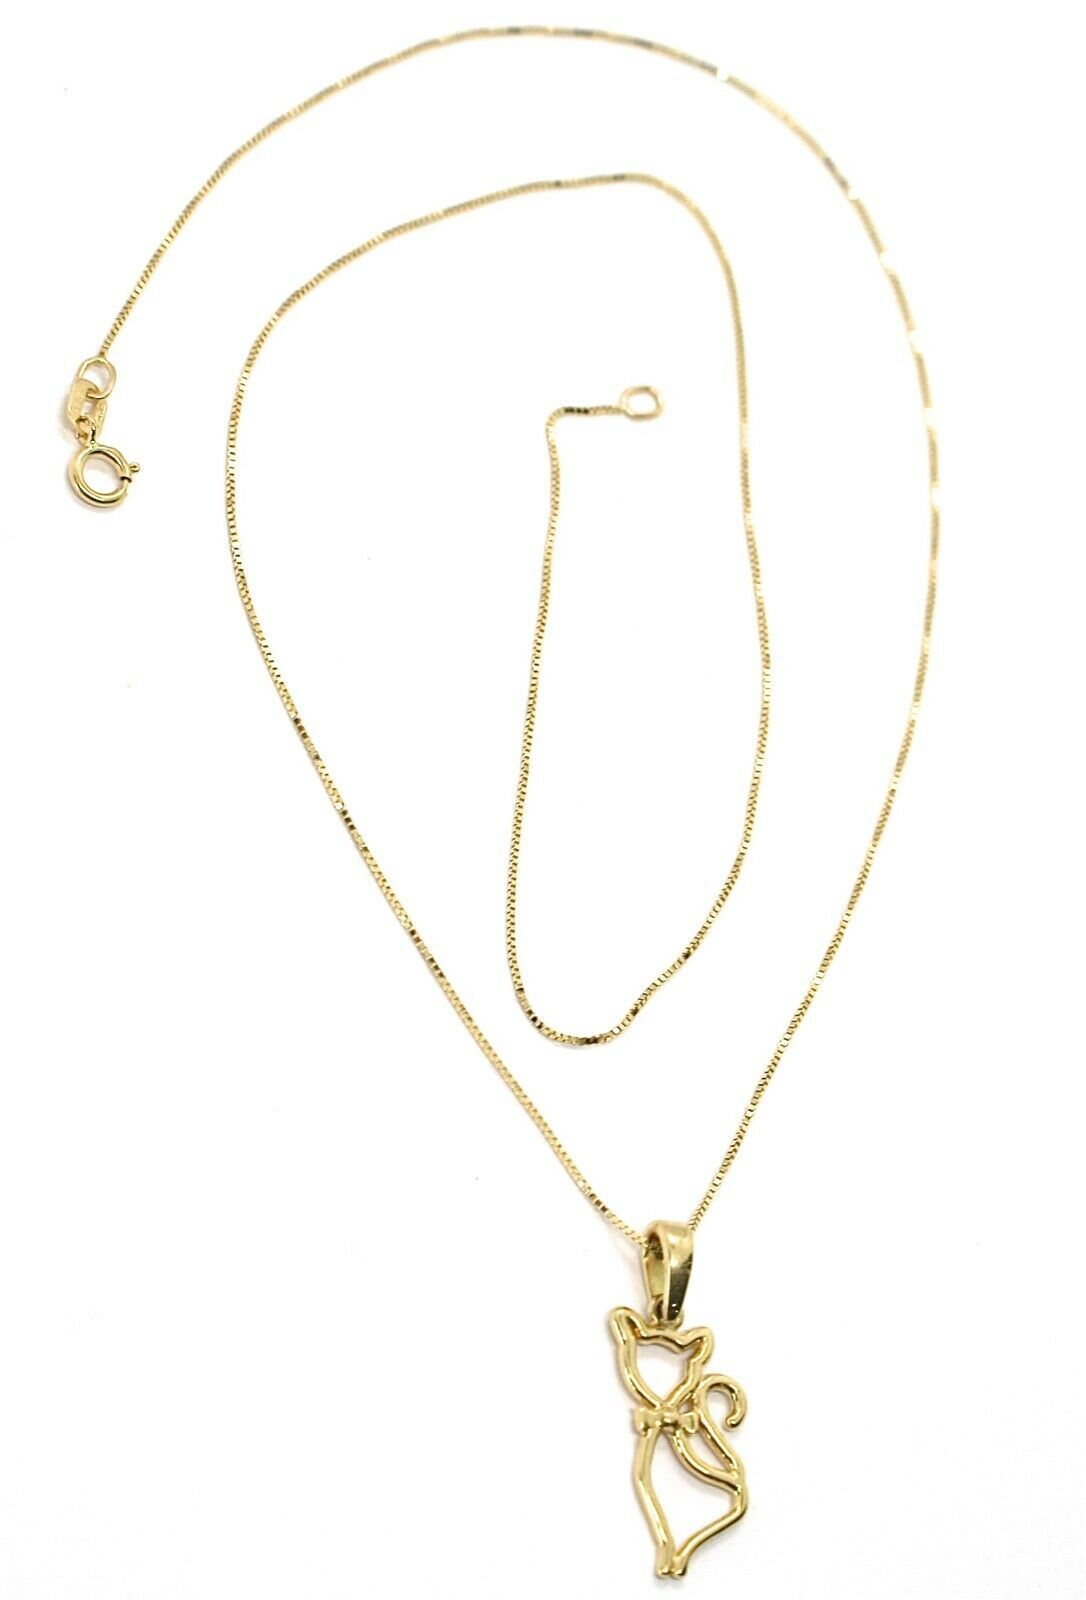 """18K YELLOW GOLD MINI NECKLACE, CAT PENDANT 0.7"""" AND VENETIAN CHAIN 17.7"""""""